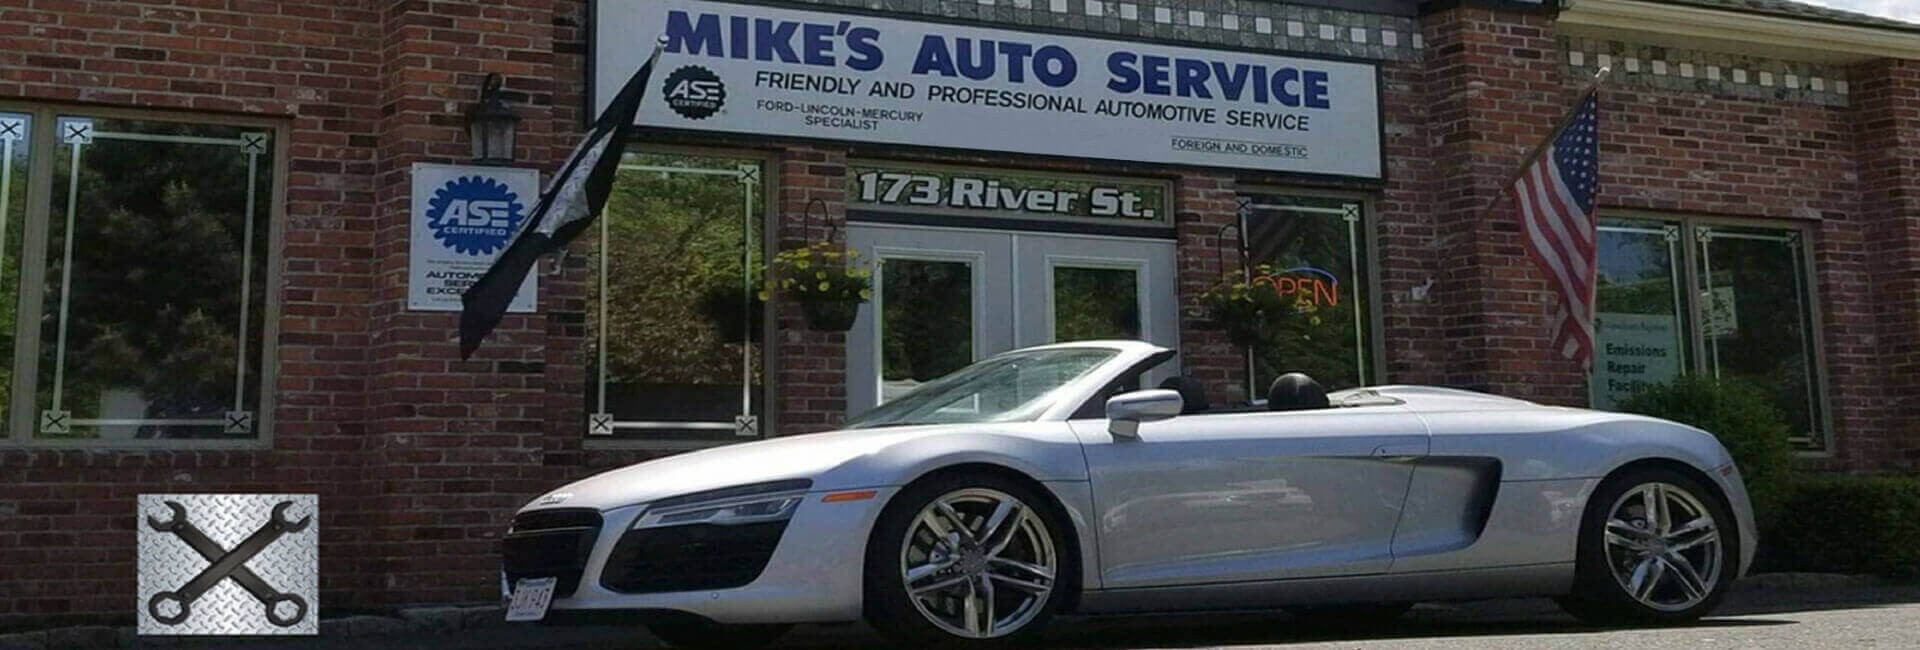 auto repair west springfield